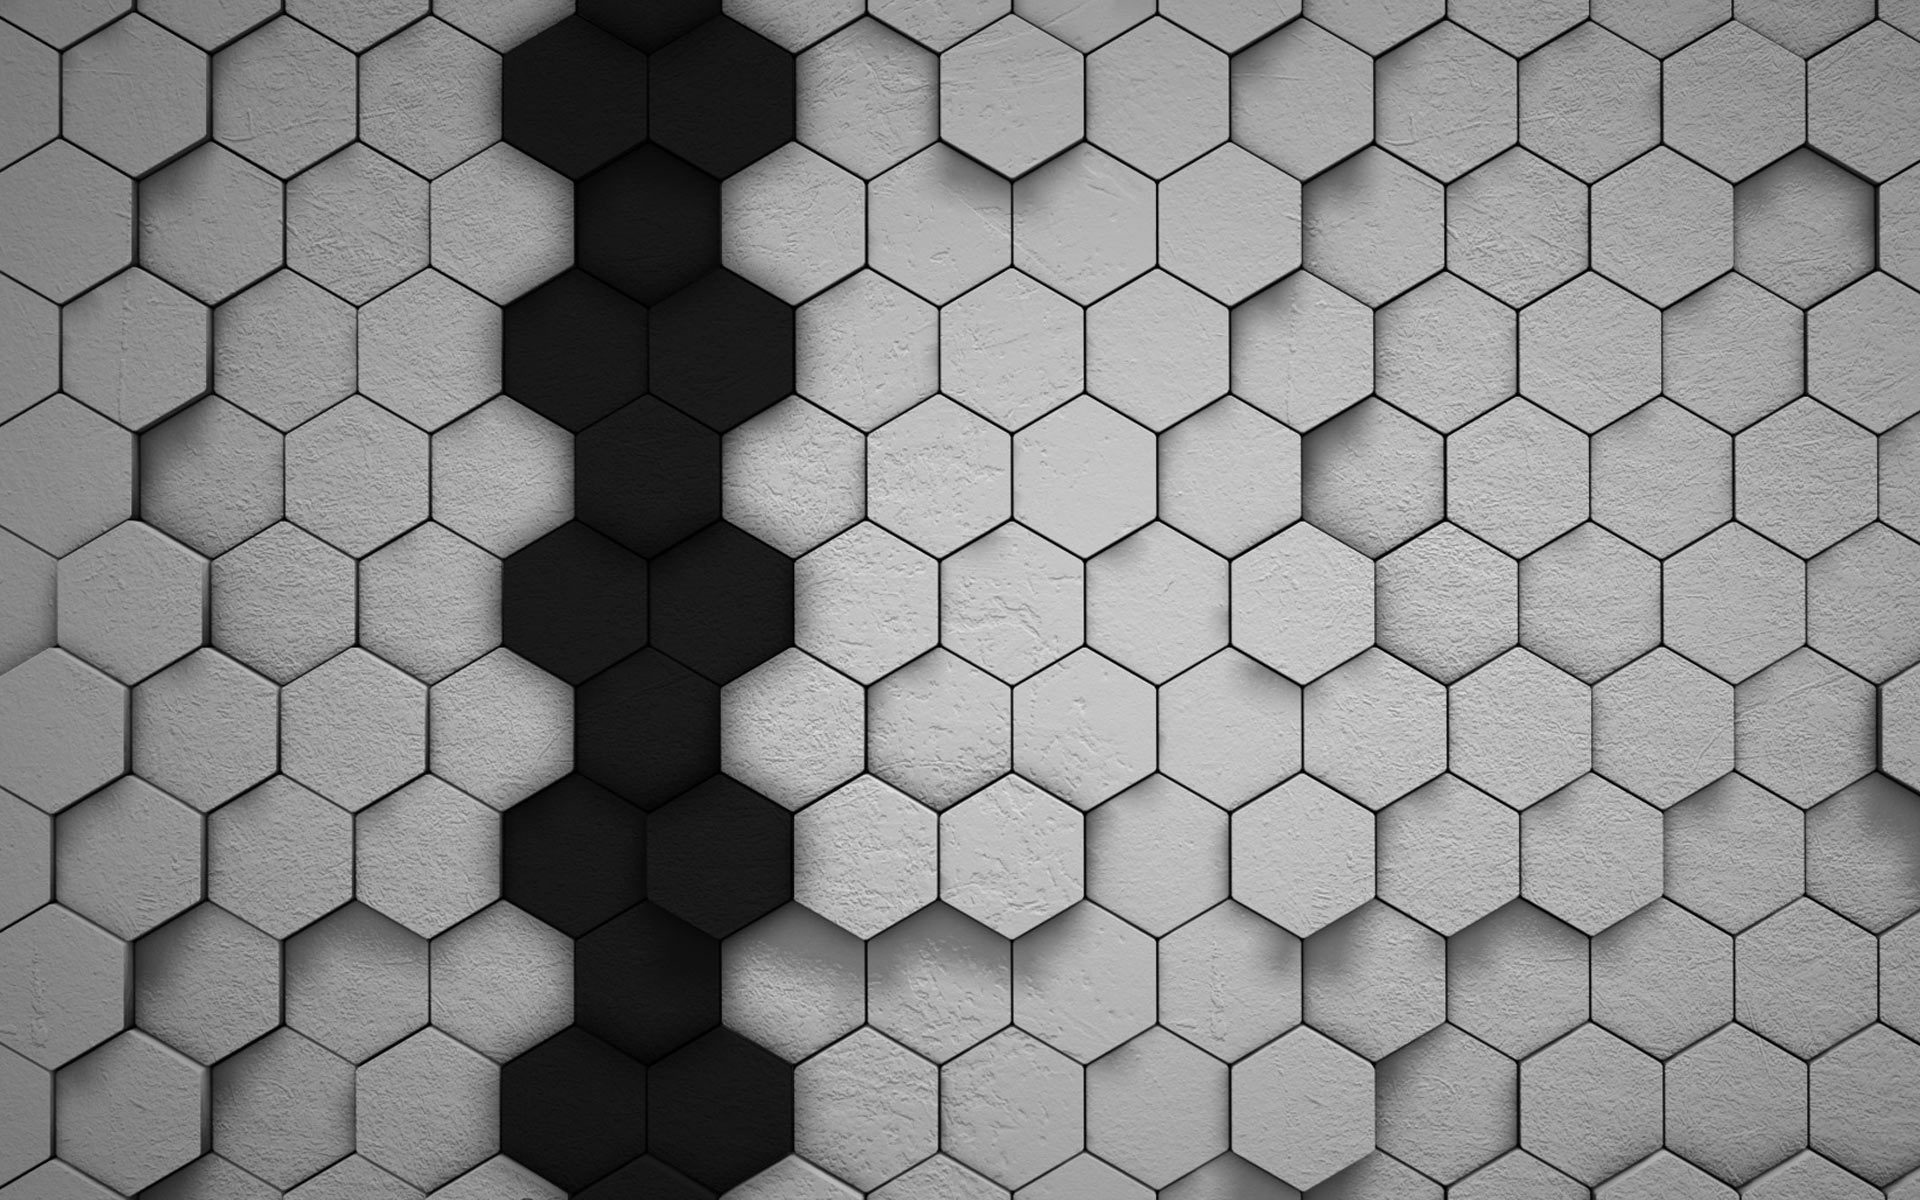 Honeycomb wallpapers background images page 6 - Gray Honeycomb Pattern Wallpaper